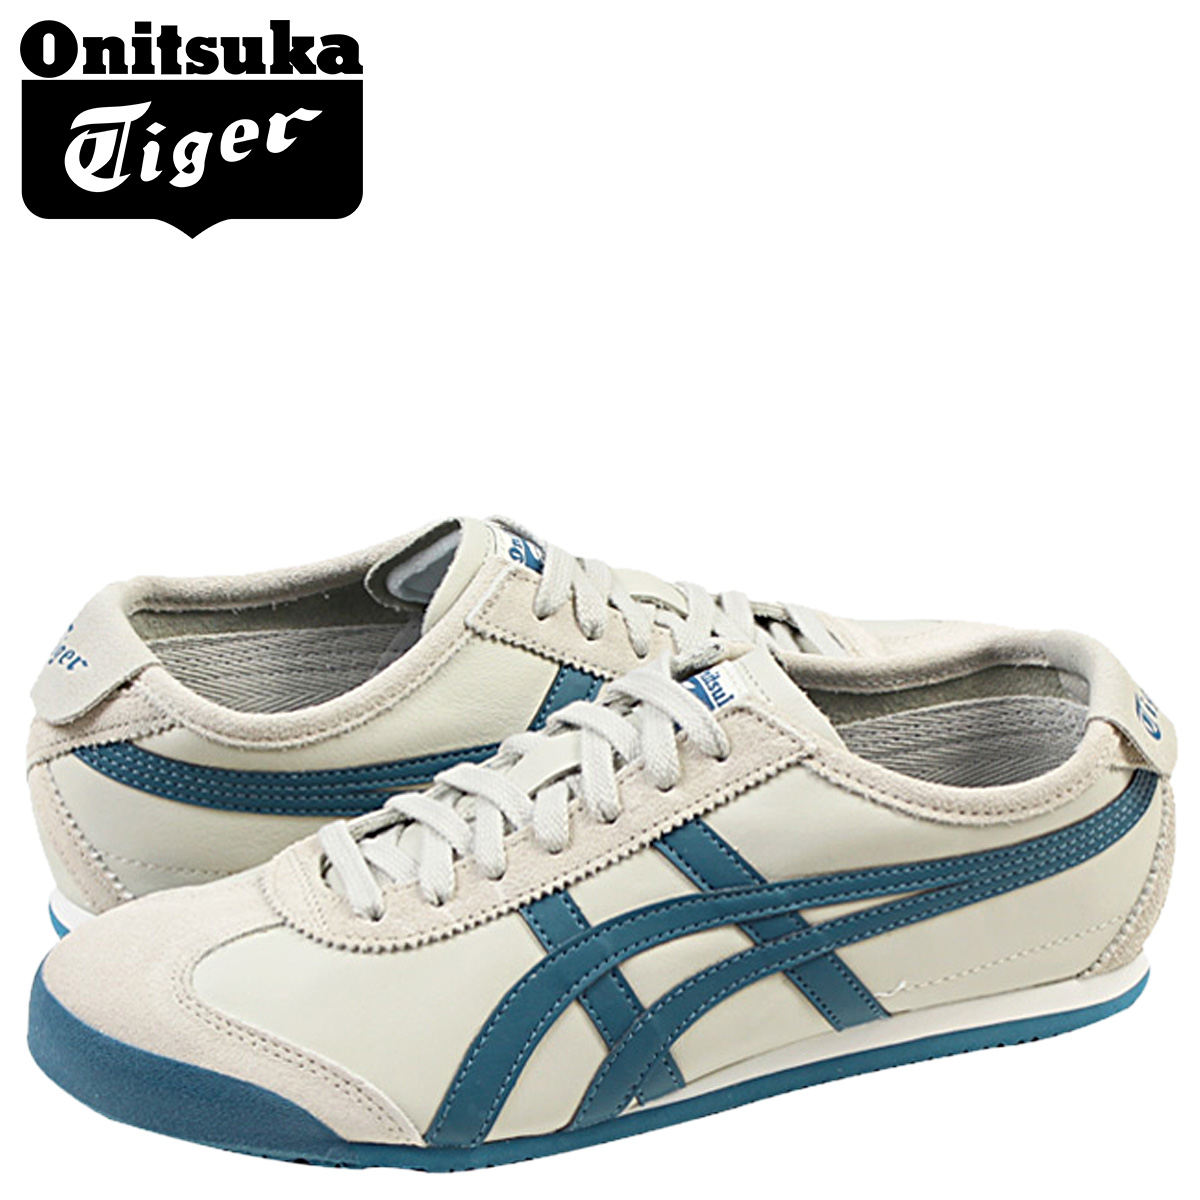 competitive price 779f1 03313 Onitsuka tiger Onitsuka Tiger MEXICO 66 sneakers Mexico 66 leather  TH4J2L-0256 off-white men gap Dis